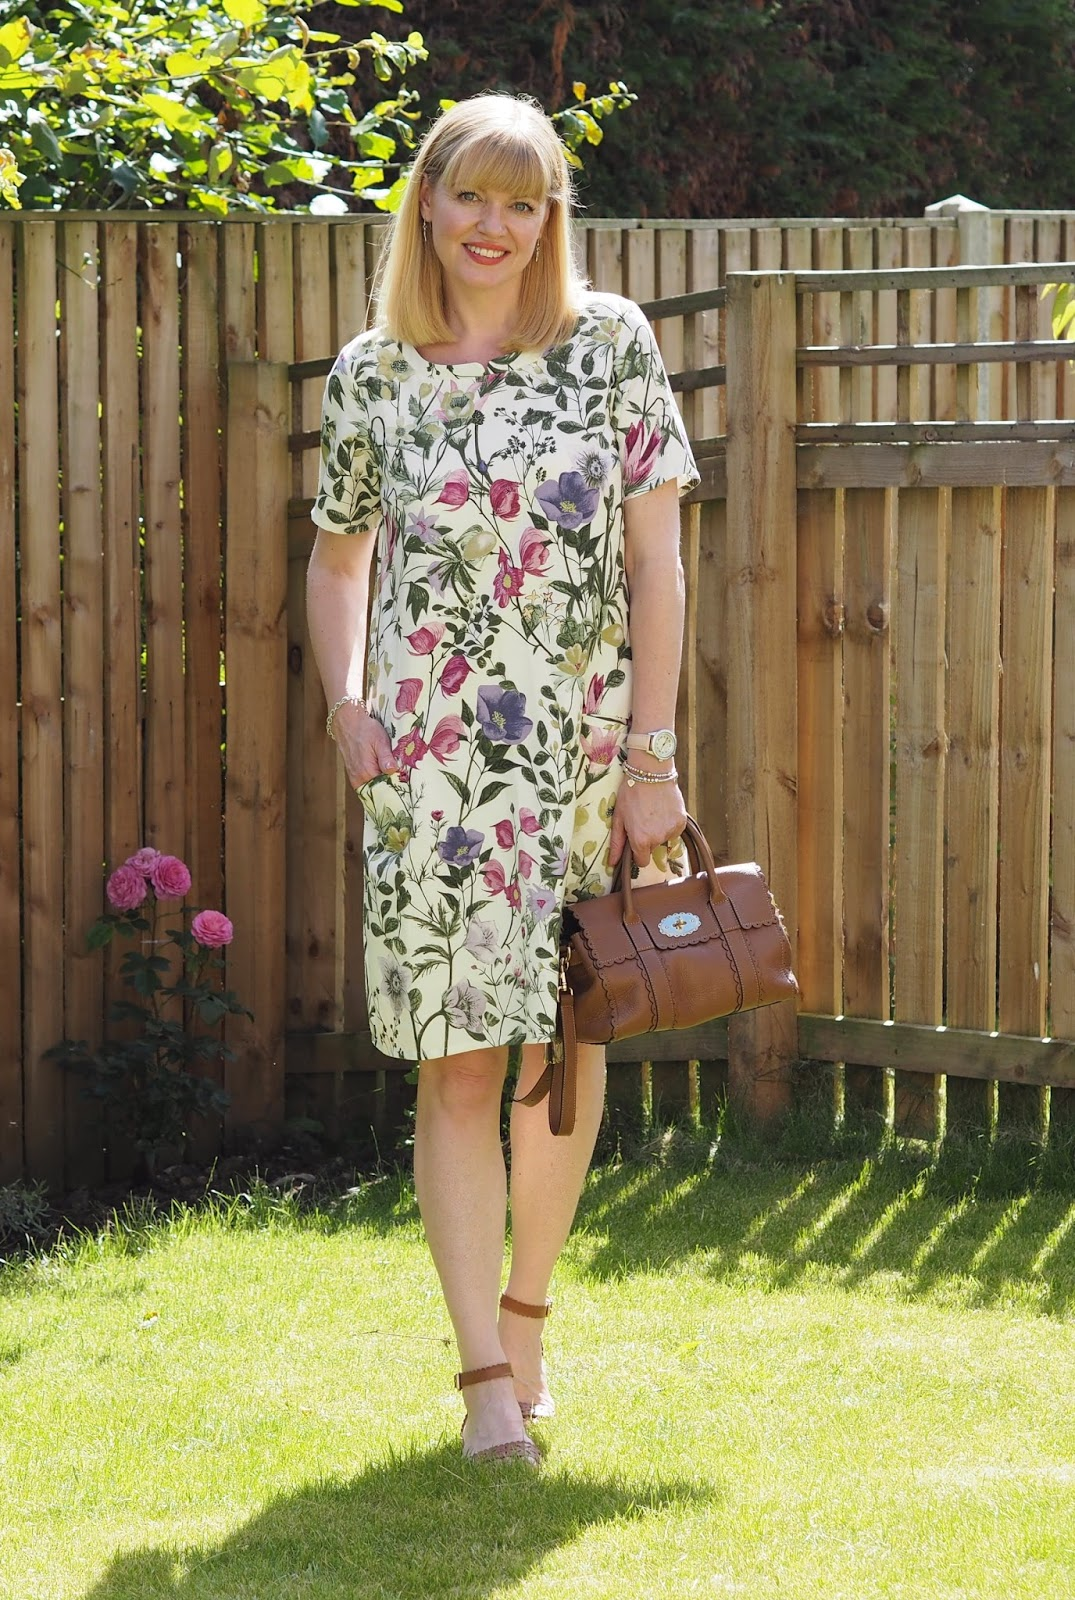 Ethical fashion Braintree botanical floral print dress with tan sandals and Mulberry bag. Over 40